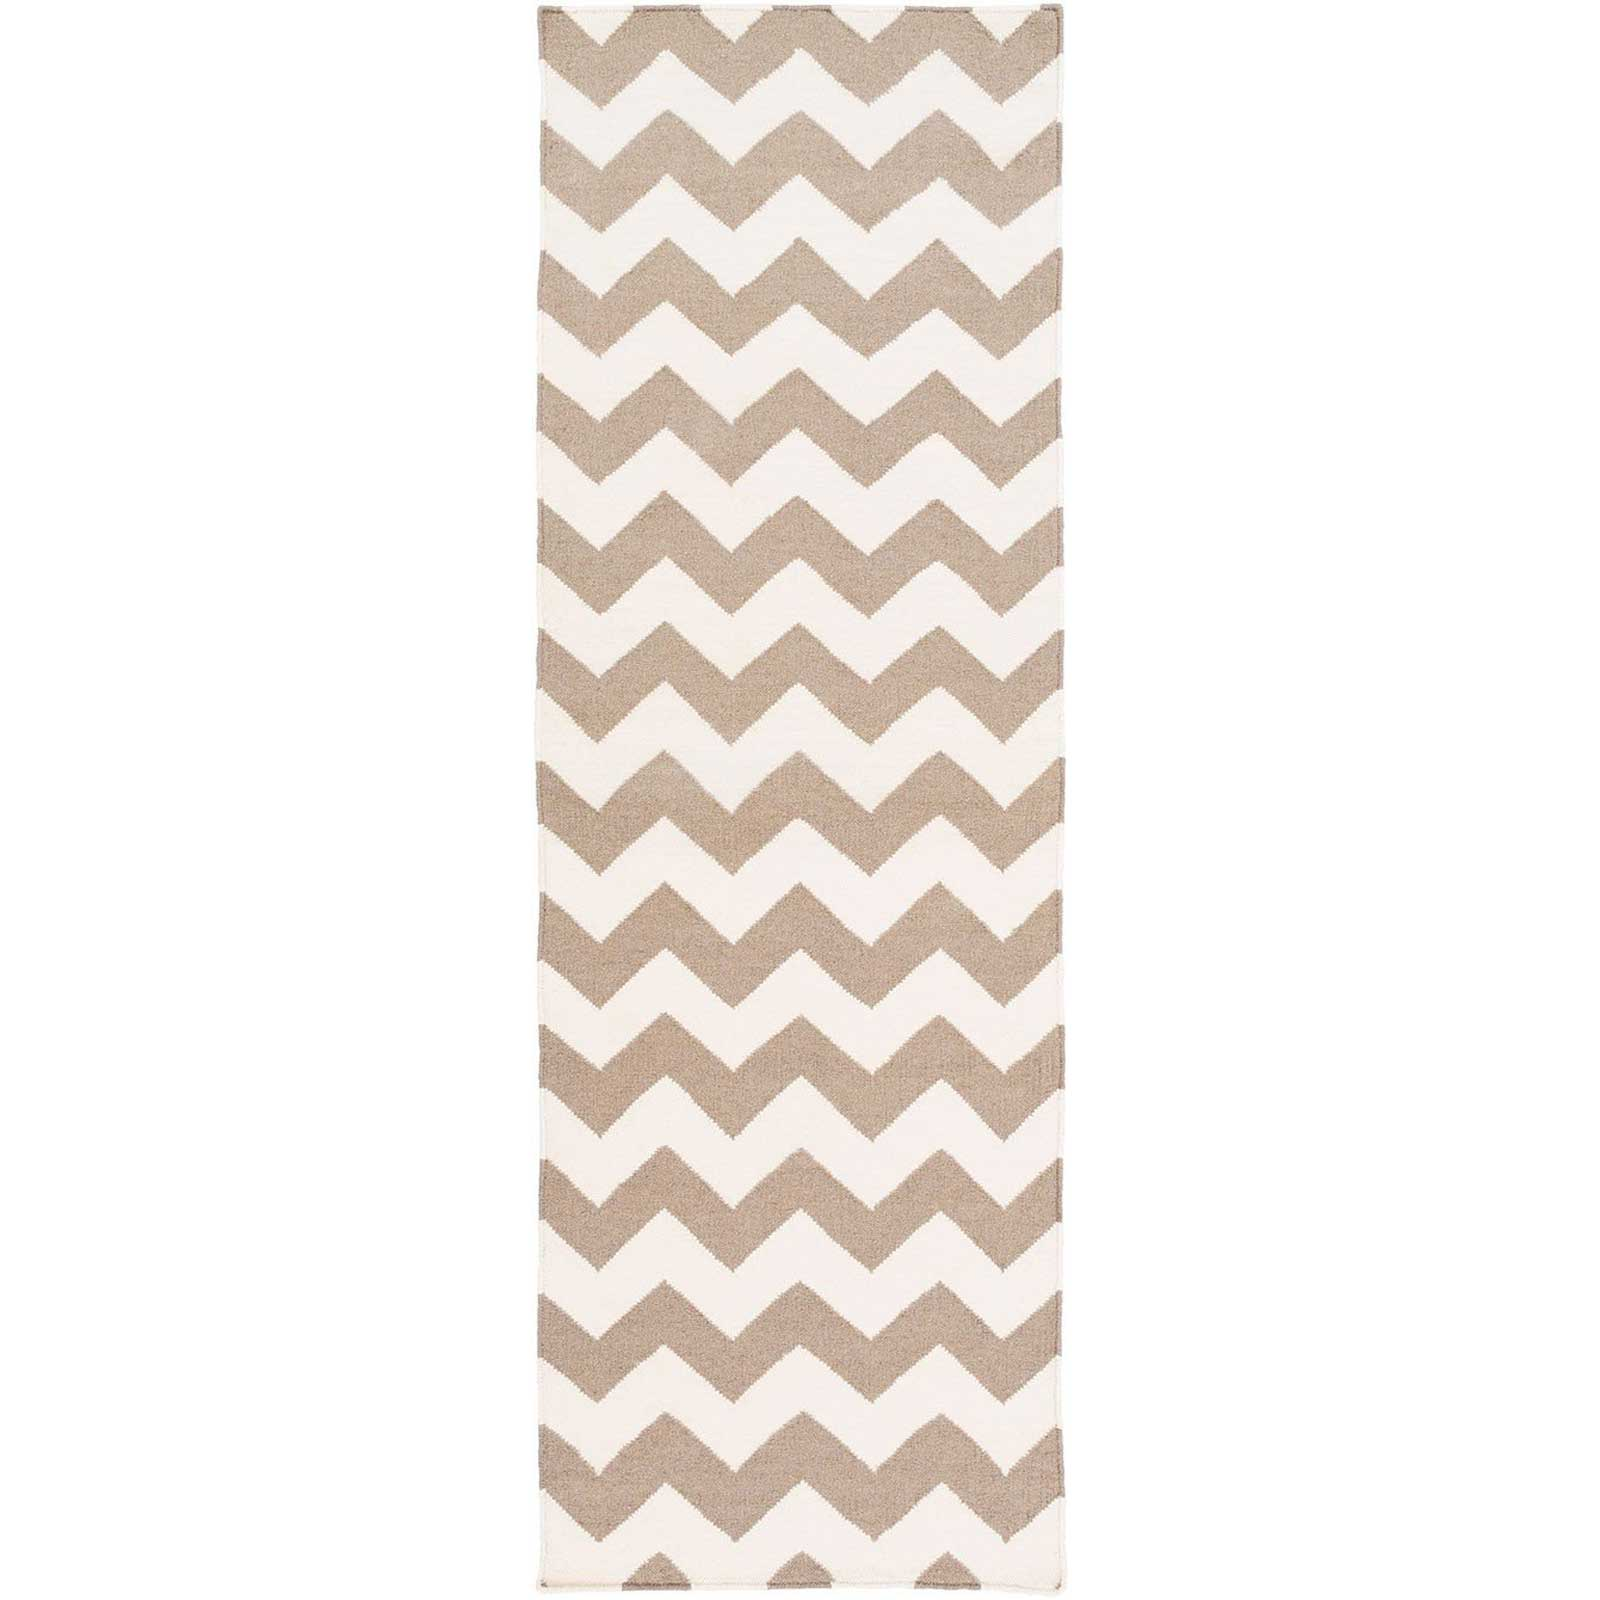 Frontier Ivory/Taupe Runner Rug